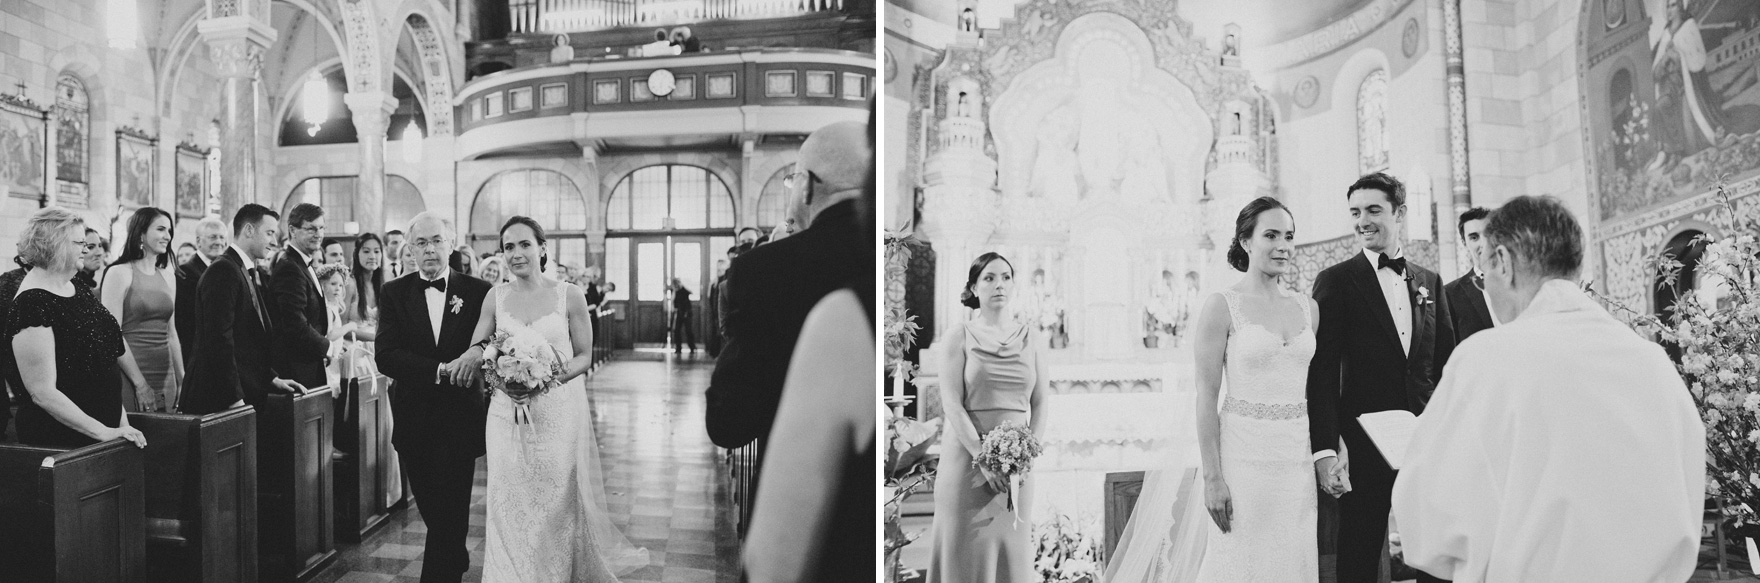 Williamsburg New York Fine Art Wedding by Christina Lilly Photography043